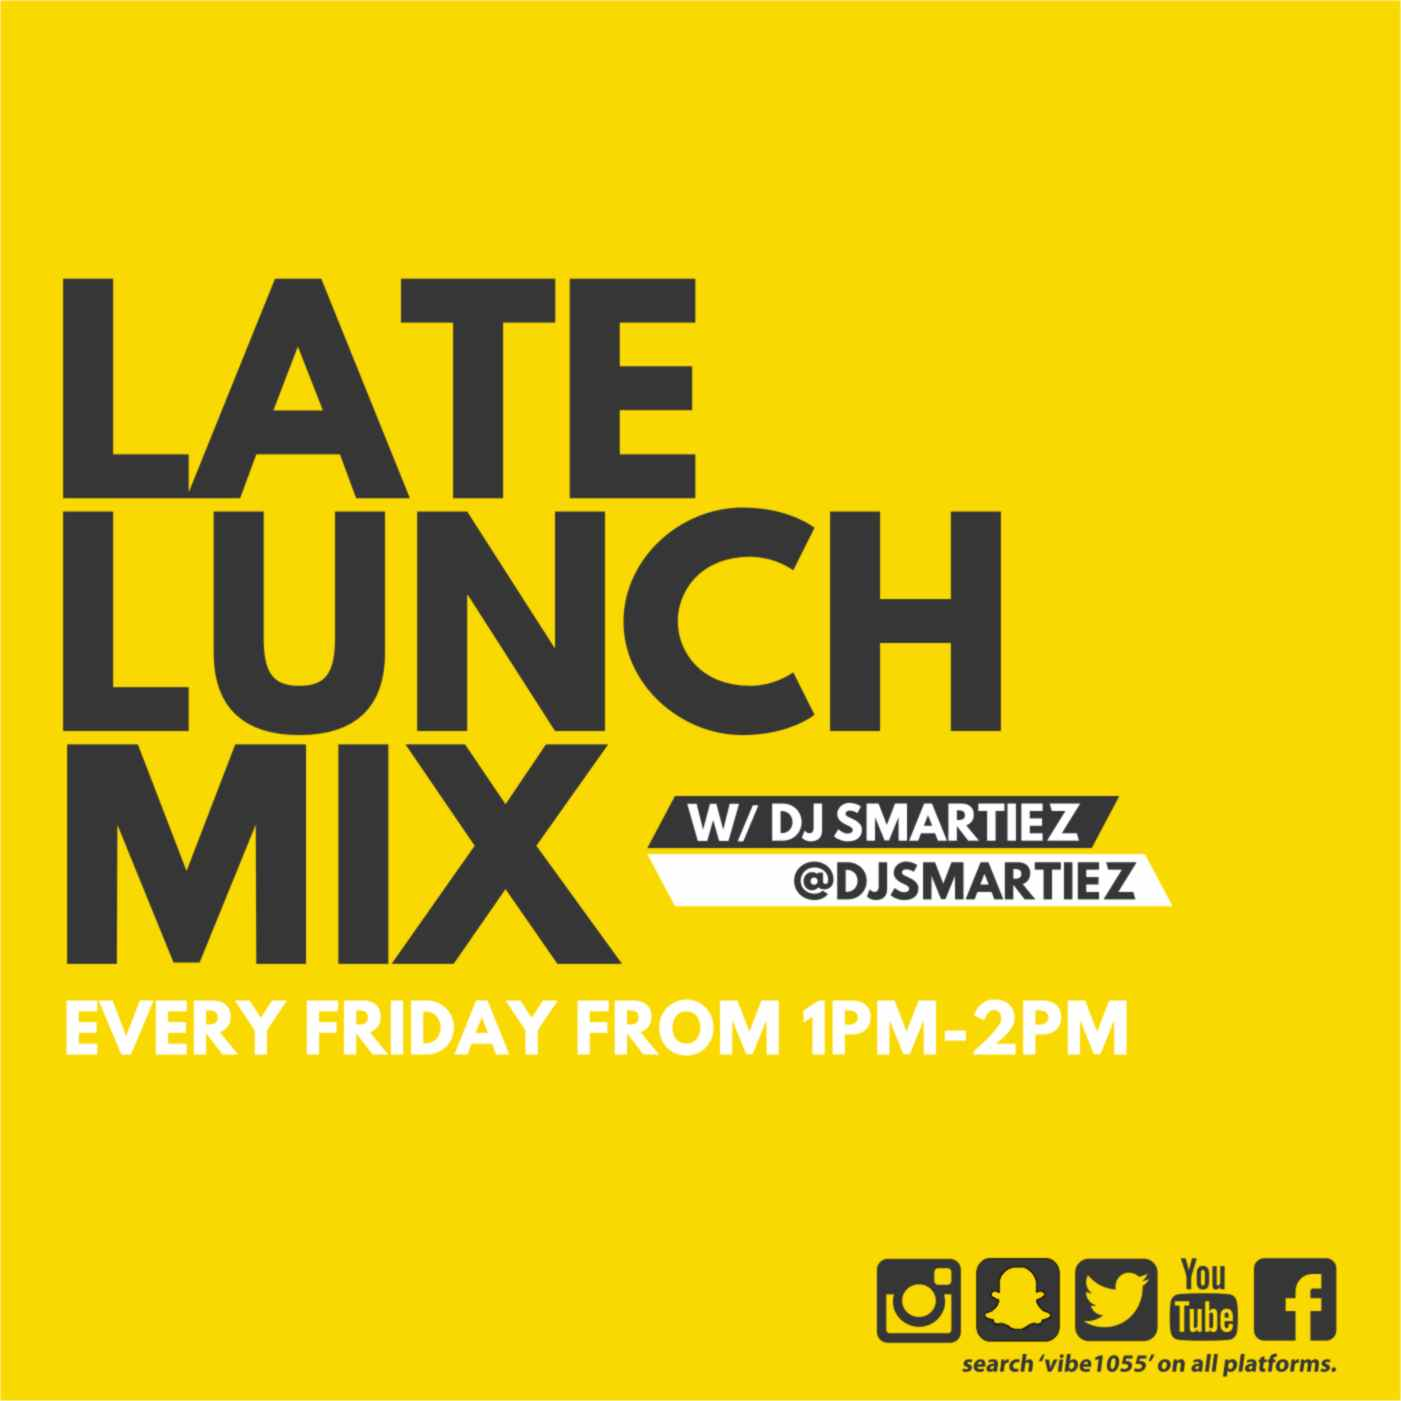 #LATELUNCHMIX – SEPTEMBER 30, 2016